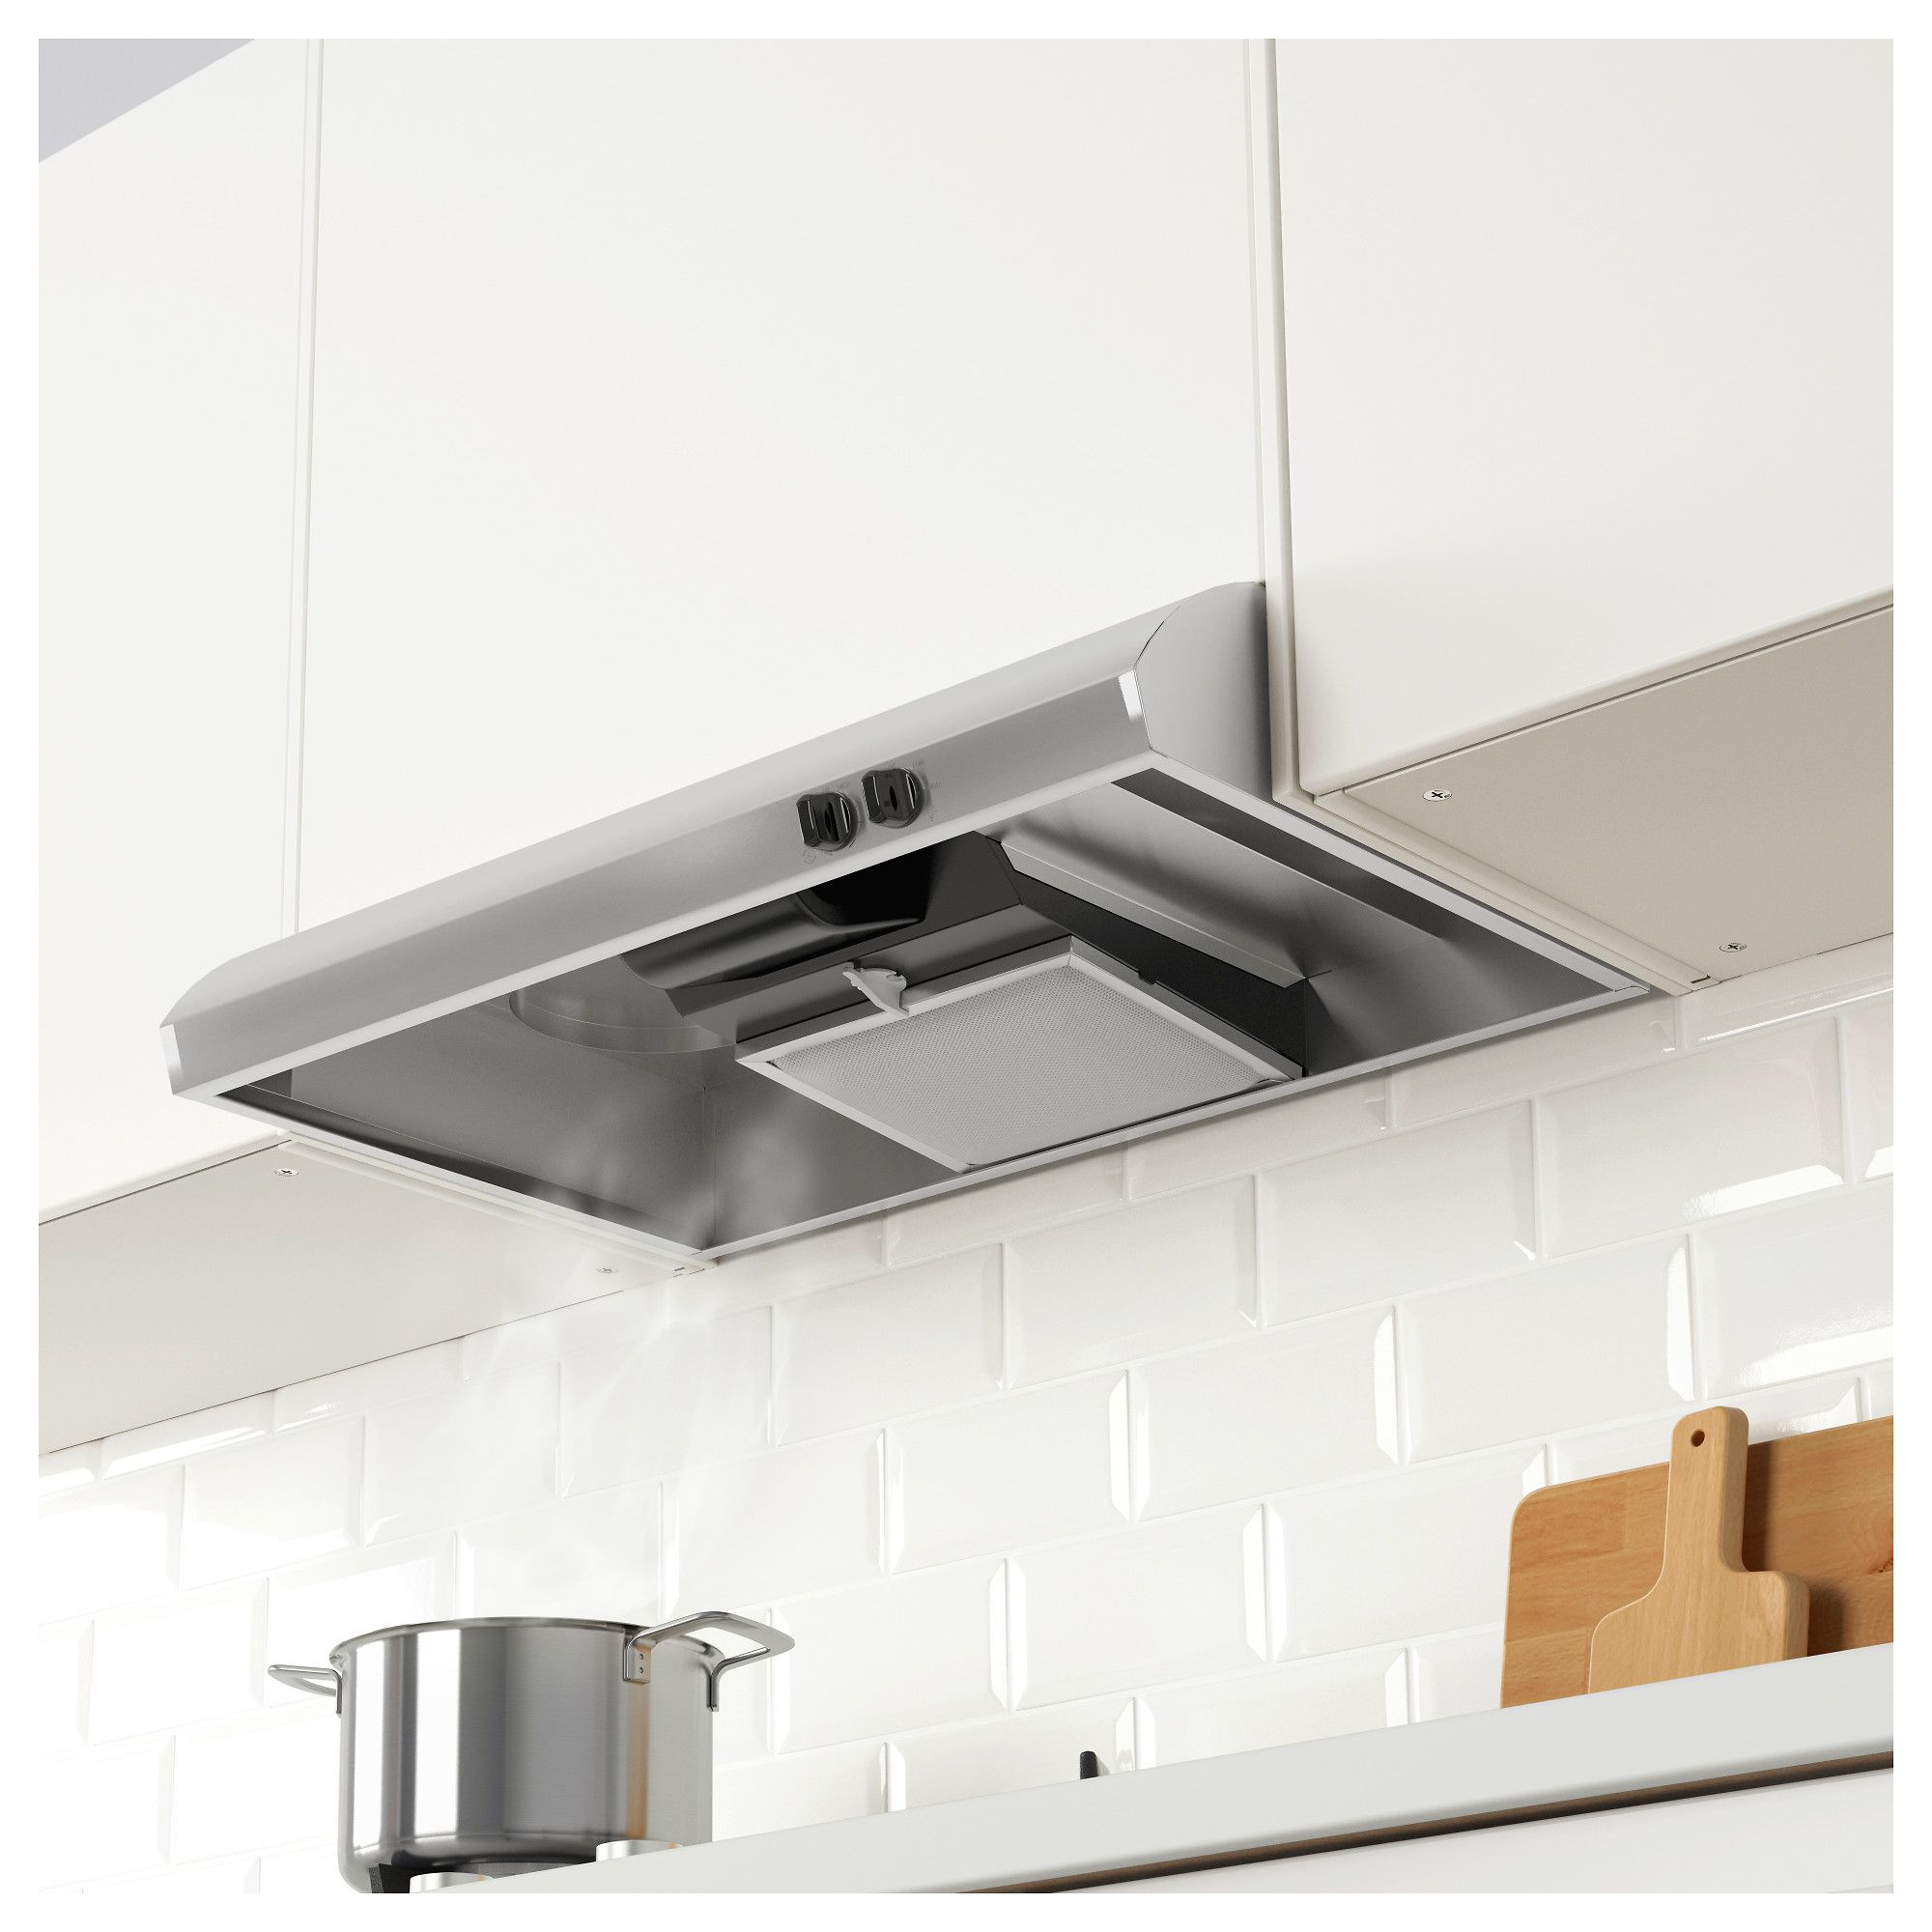 Furniture Home Furnishings Find Your Inspiration Exhaust Fan Kitchen Exhaust Fan Kitchen Exhaust